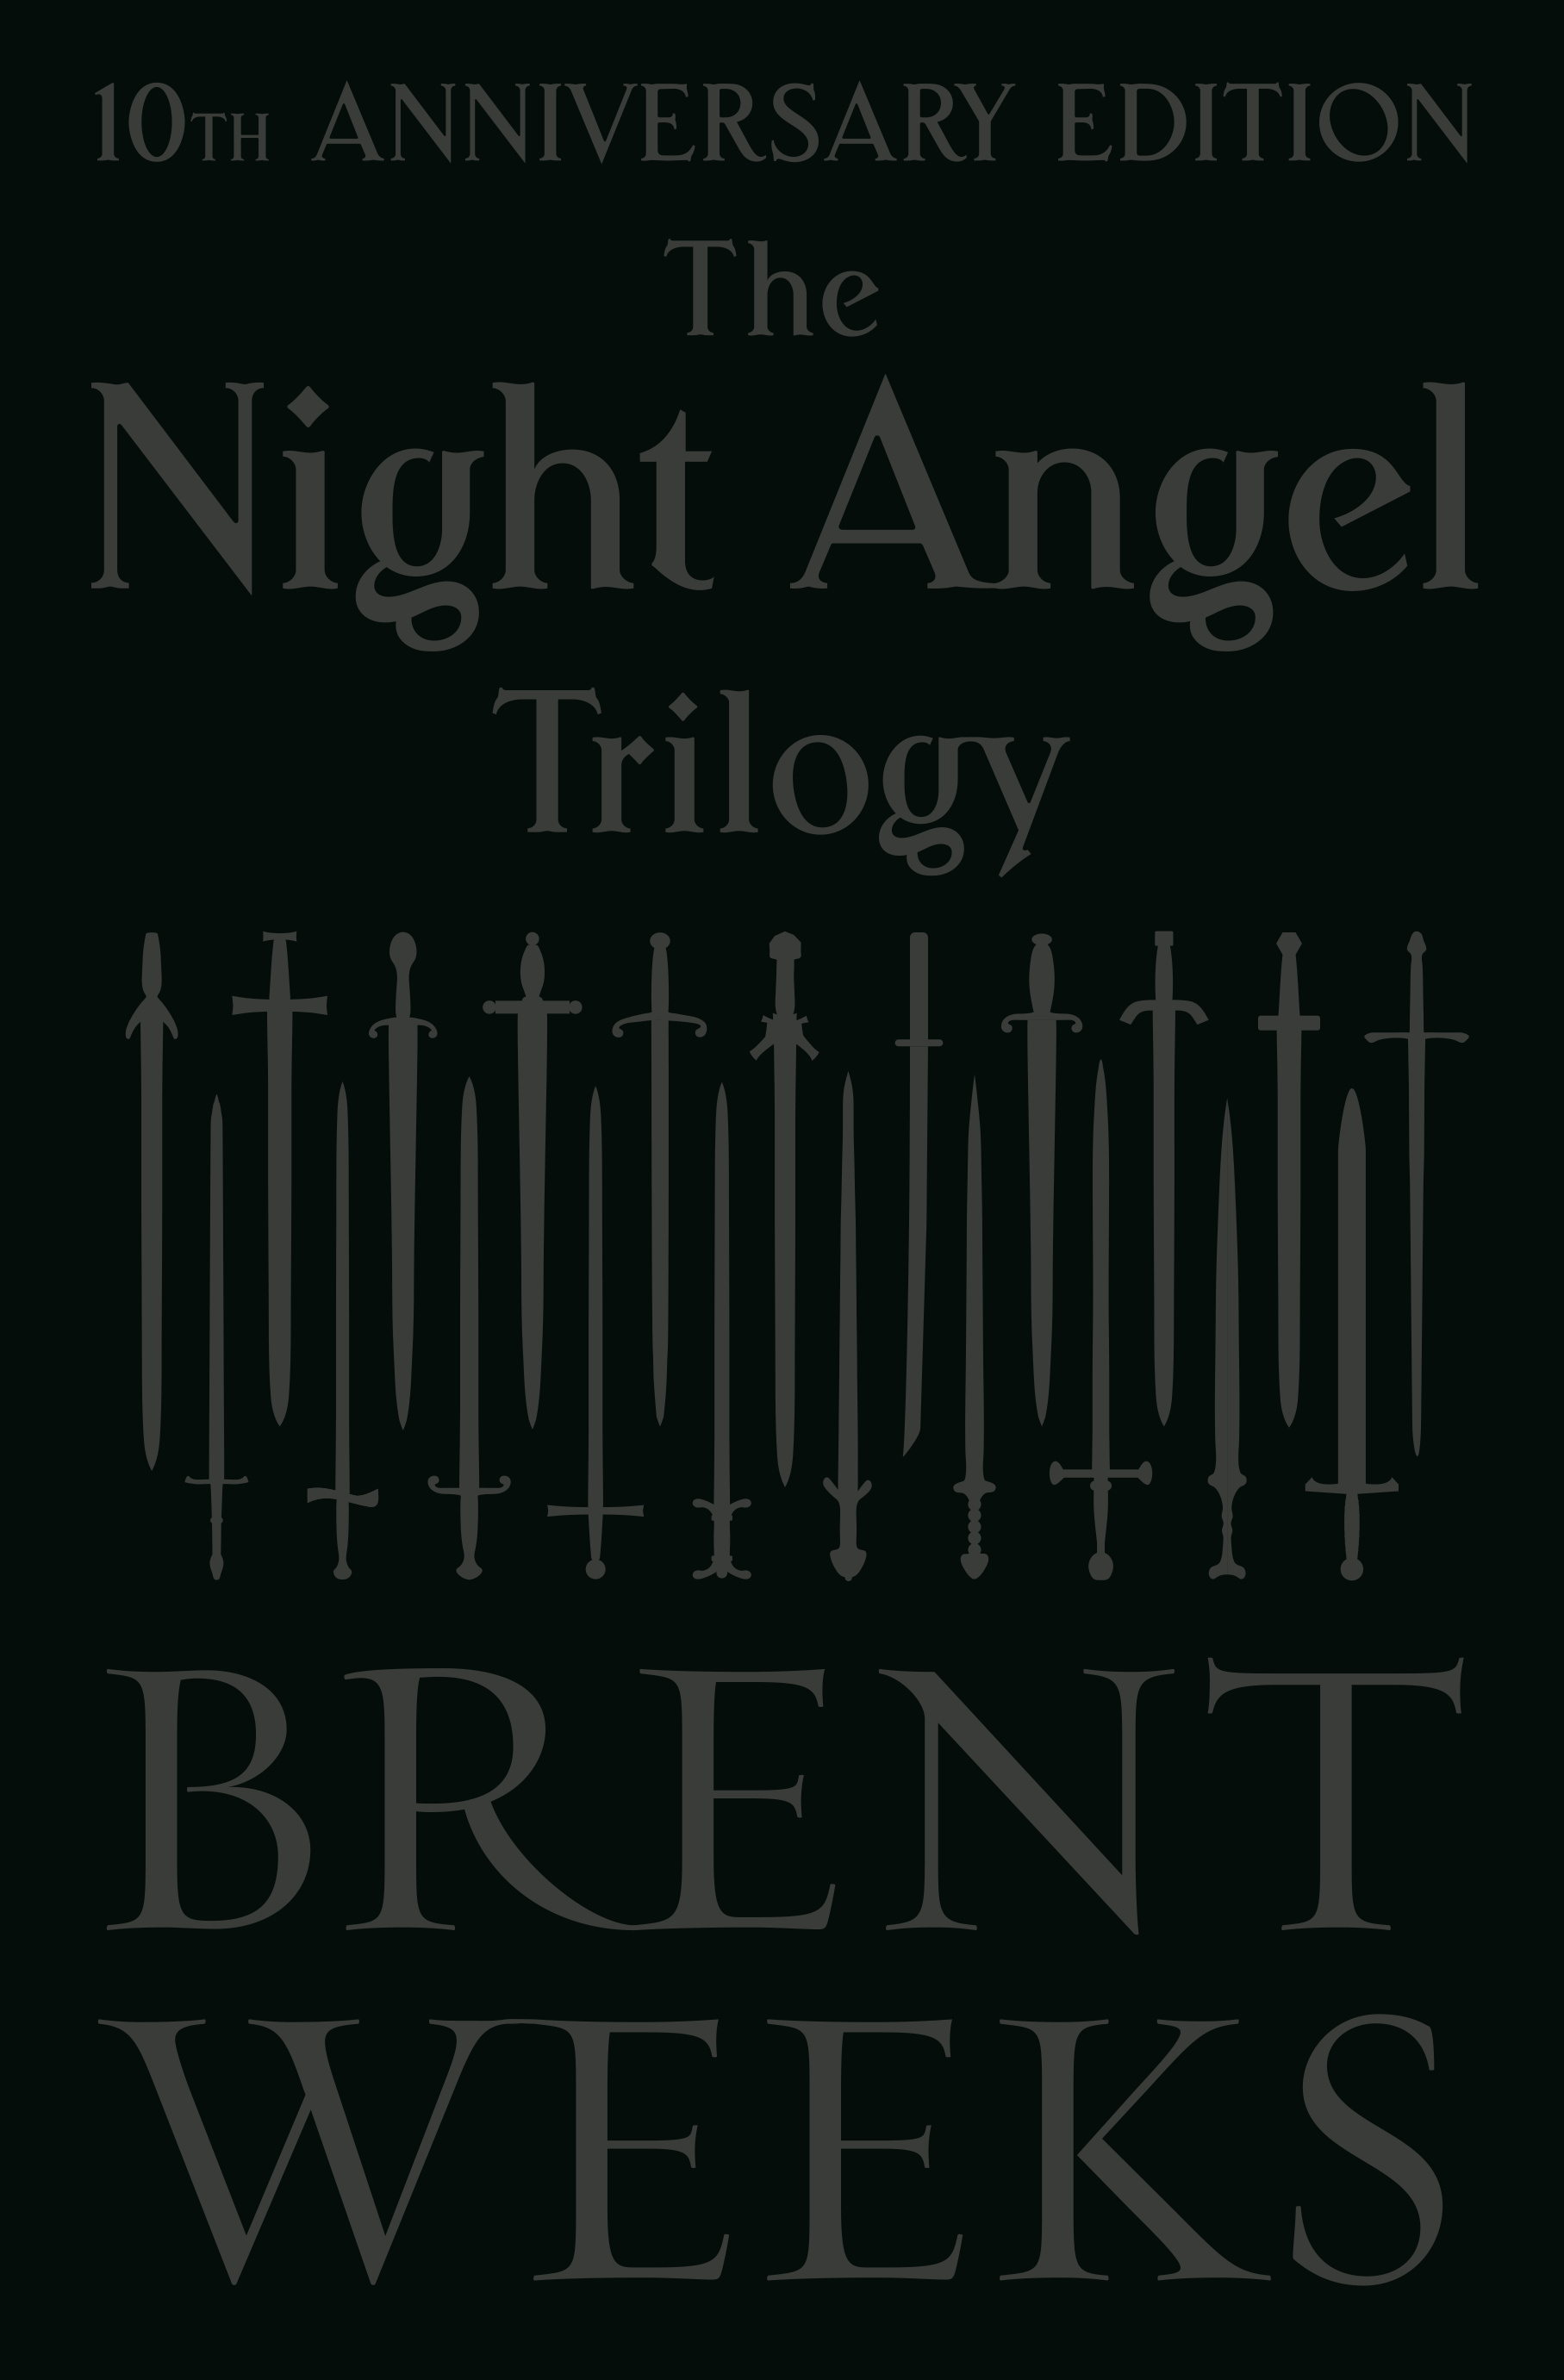 The Night Angel TrilogyTenth Anniversary Edition